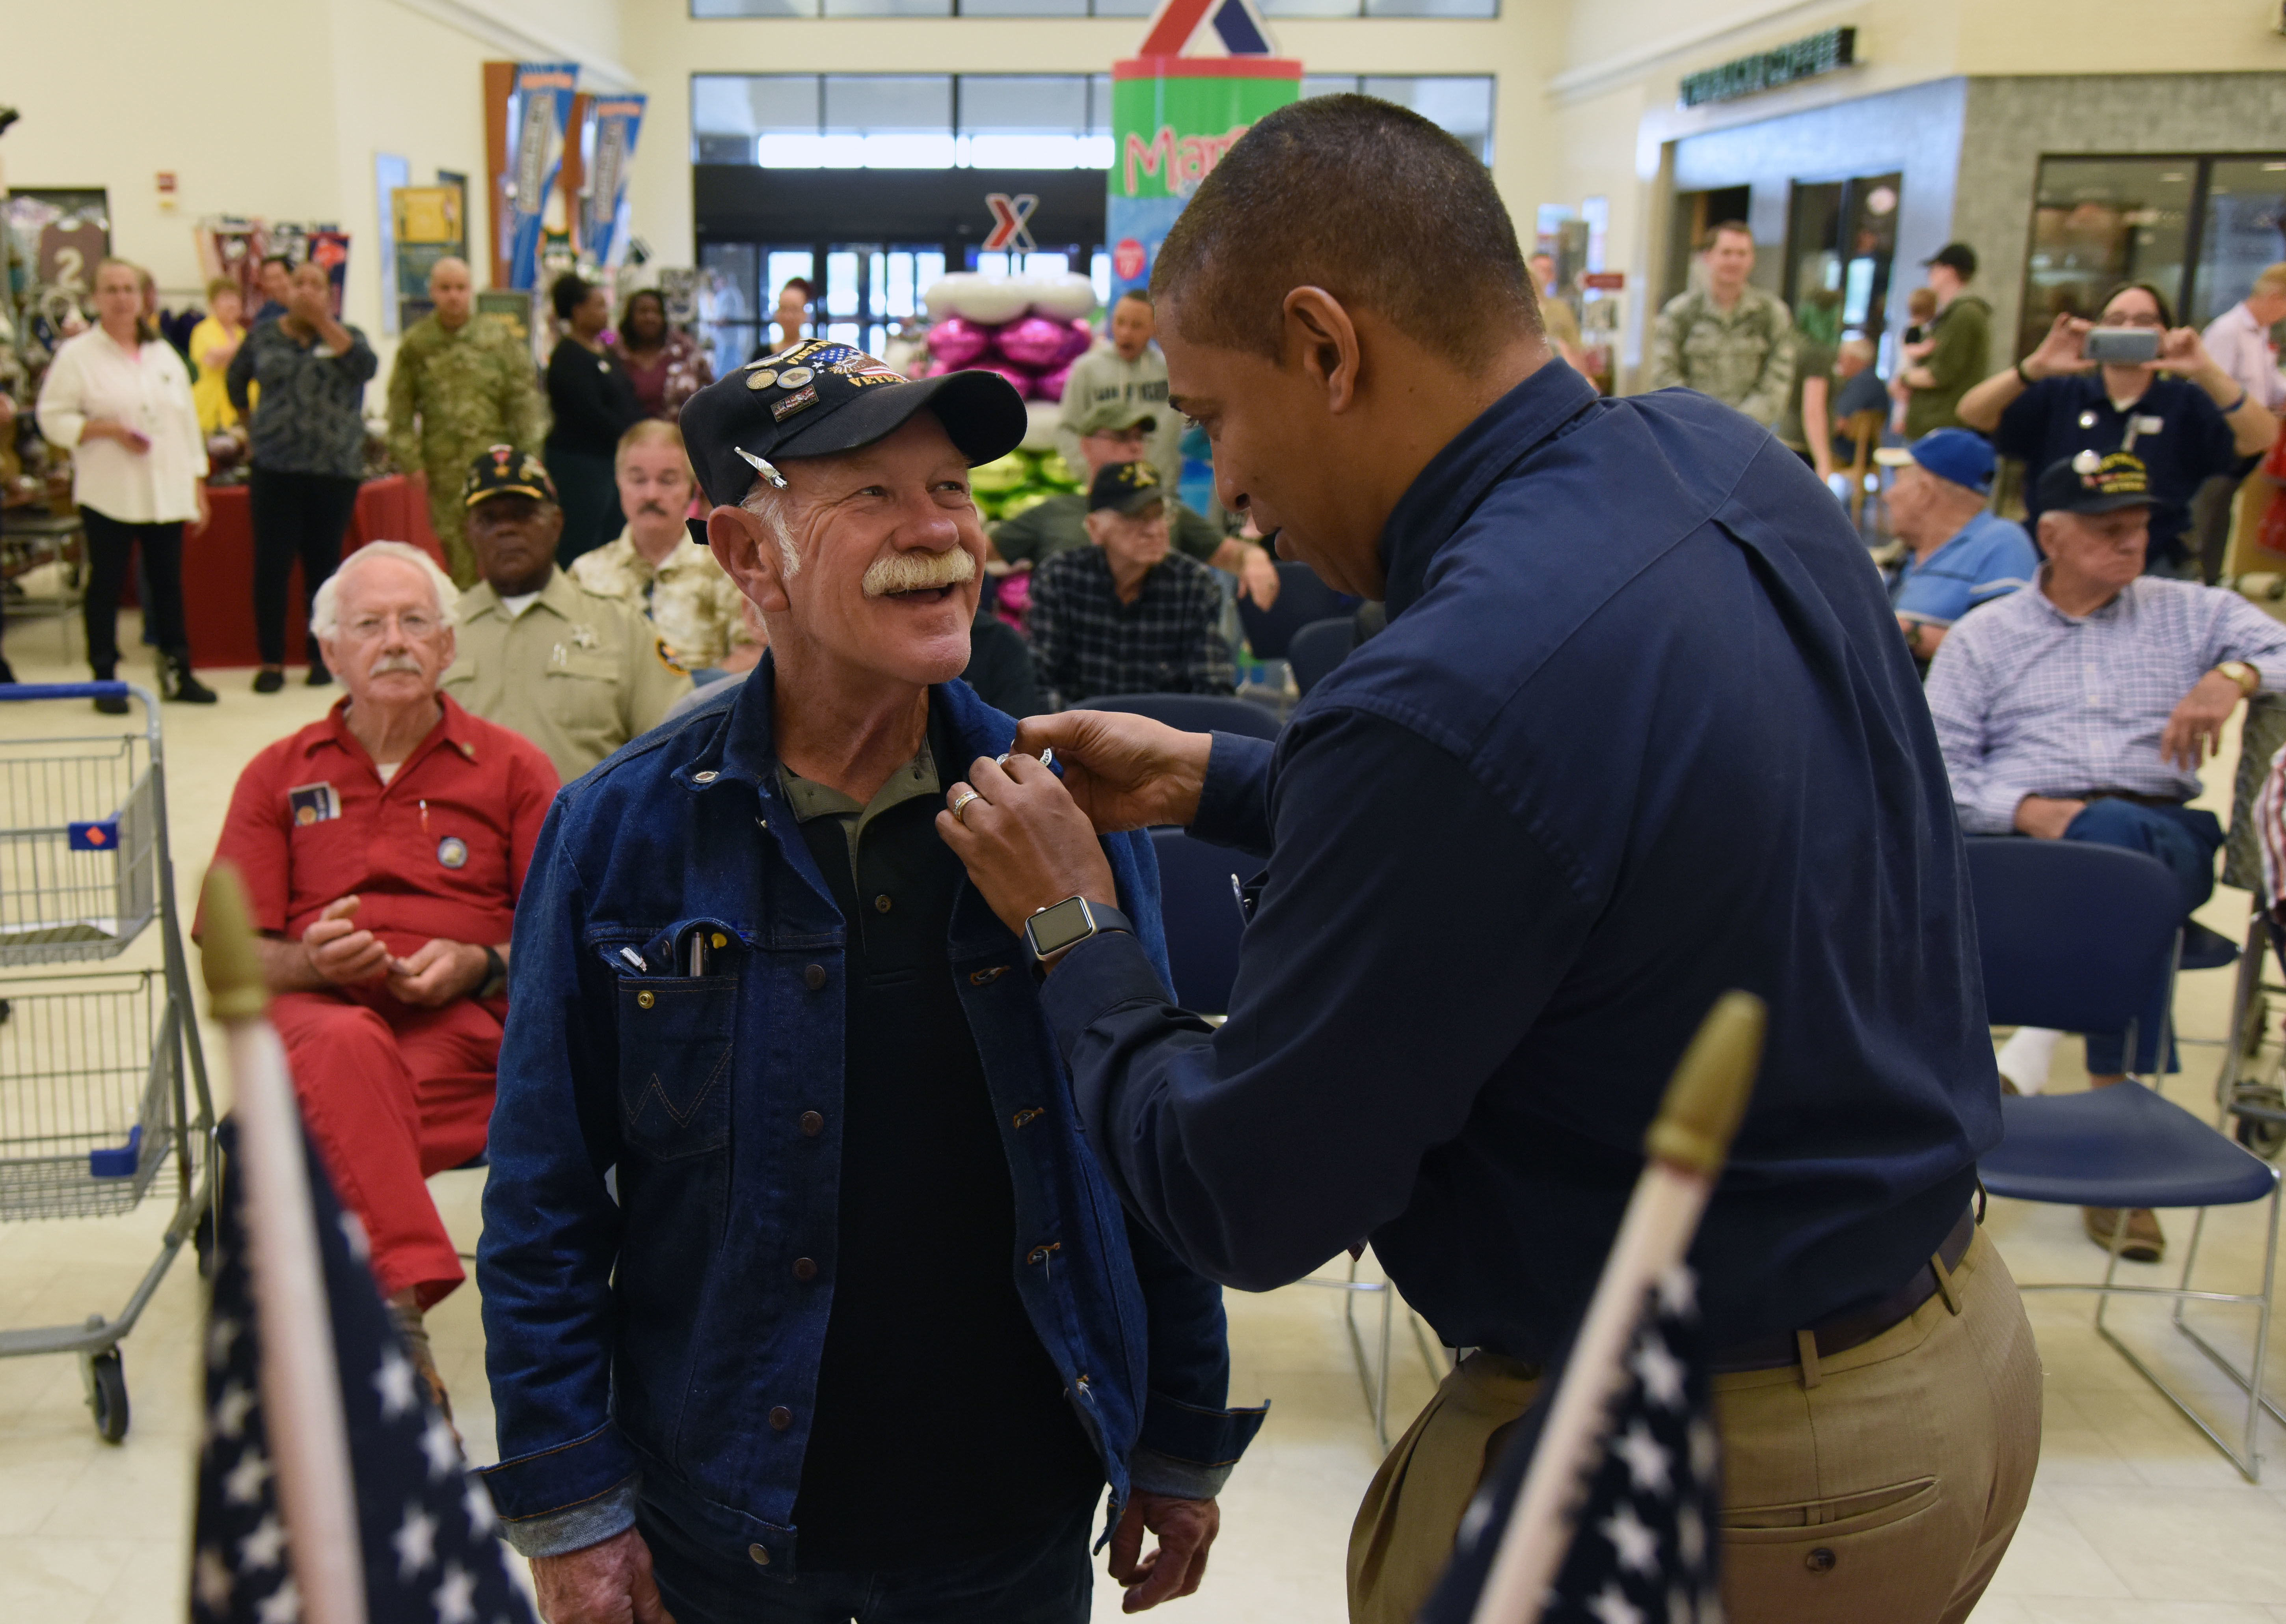 Gregory Hall, Keesler Base Exchange general manager, presents a lapel pin to Roger Anderson, U.S. Navy Vietnam veteran, during the 50th Anniversary Vietnam Memorial Pinning Day at The Exchange March 29, 2018, on Keesler Air Force Base, Mississippi. The event, which also included a cake cutting ceremony, was held to honor Vietnam veterans for their service. (Kemberly Groue/Air Force)